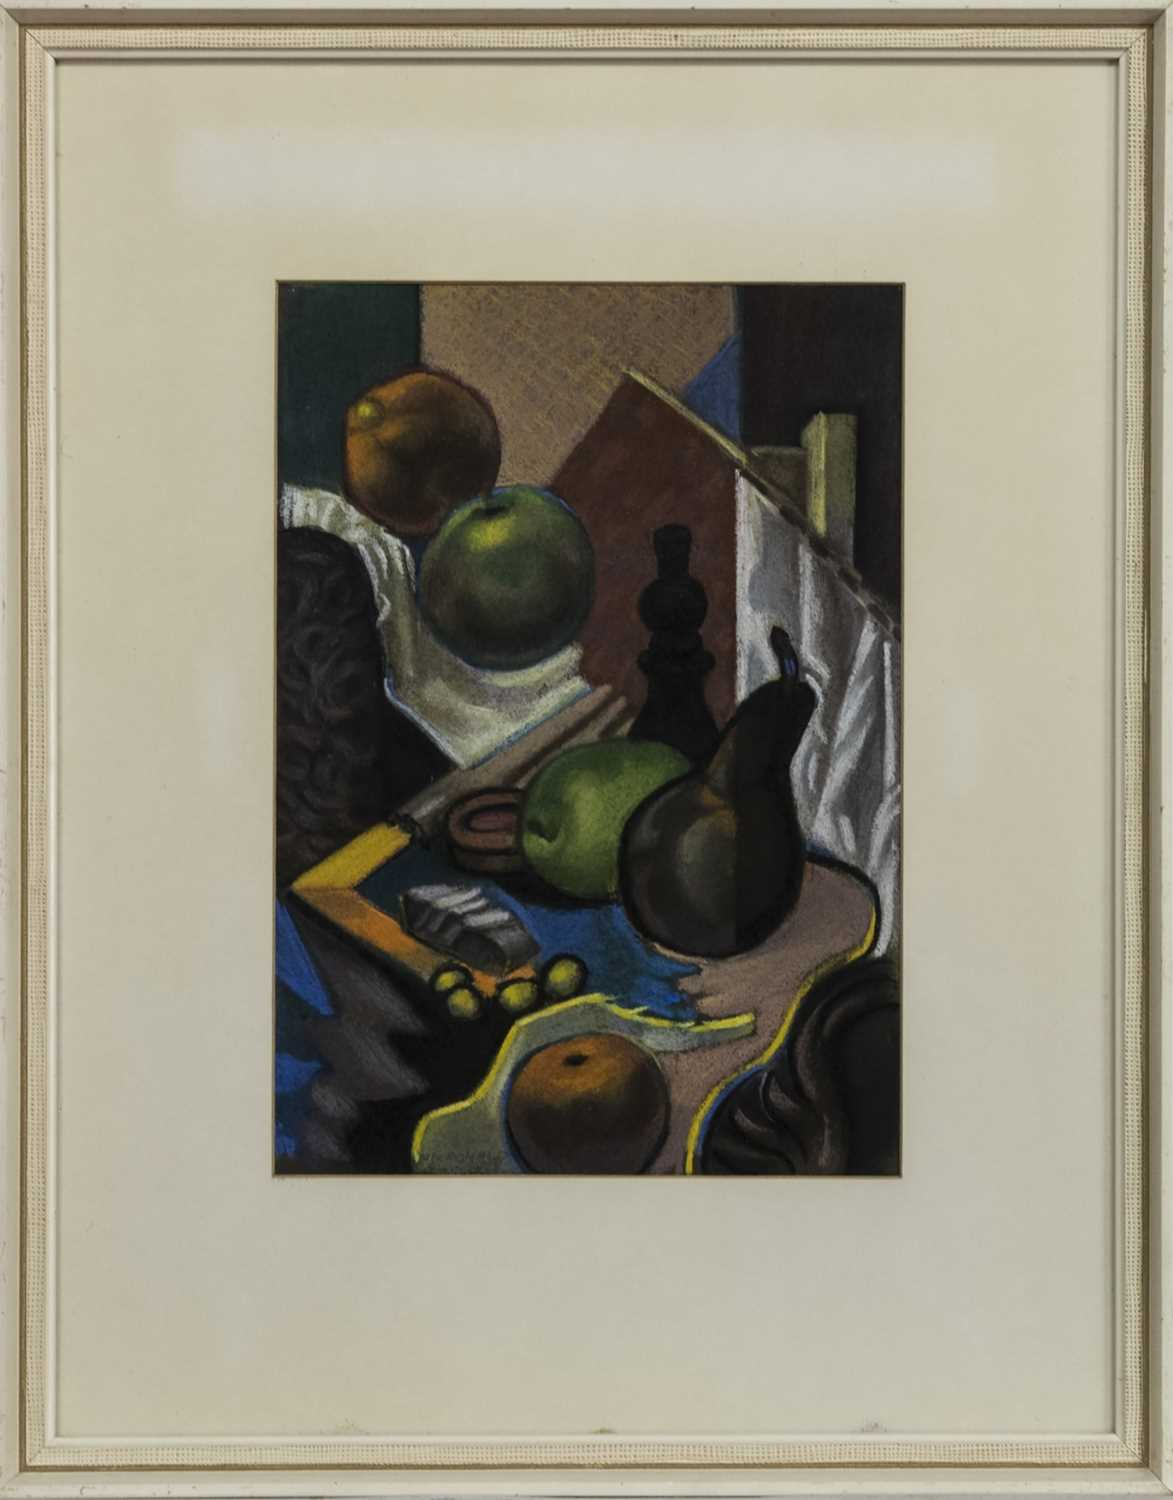 Lot 561 - STILL LIFE WITH PAWN, A PASTEL BY TOM MACDONALD